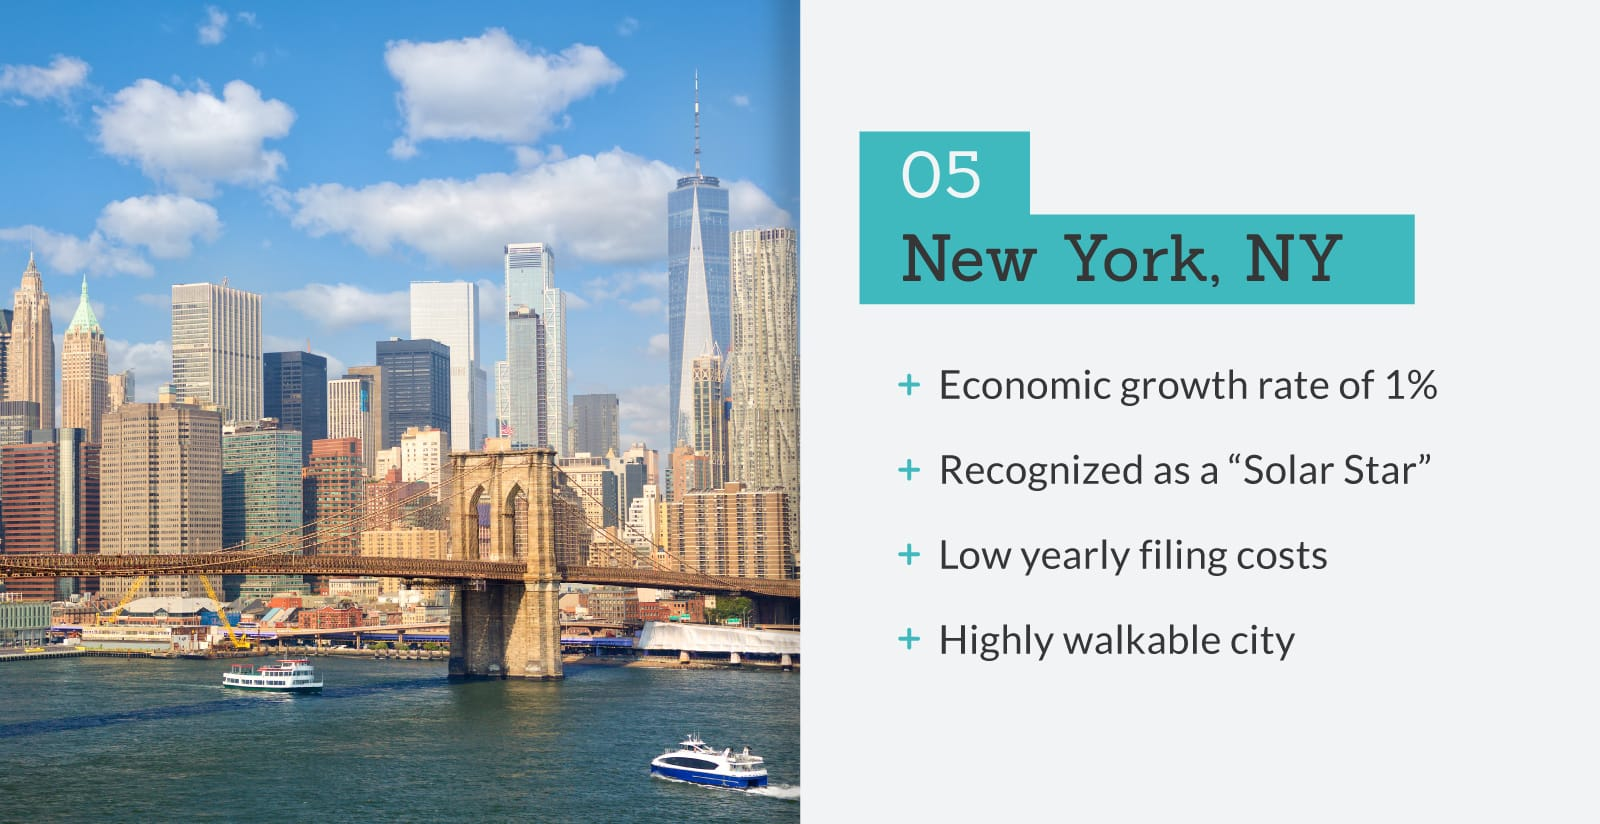 picture of New York, NY with stats.